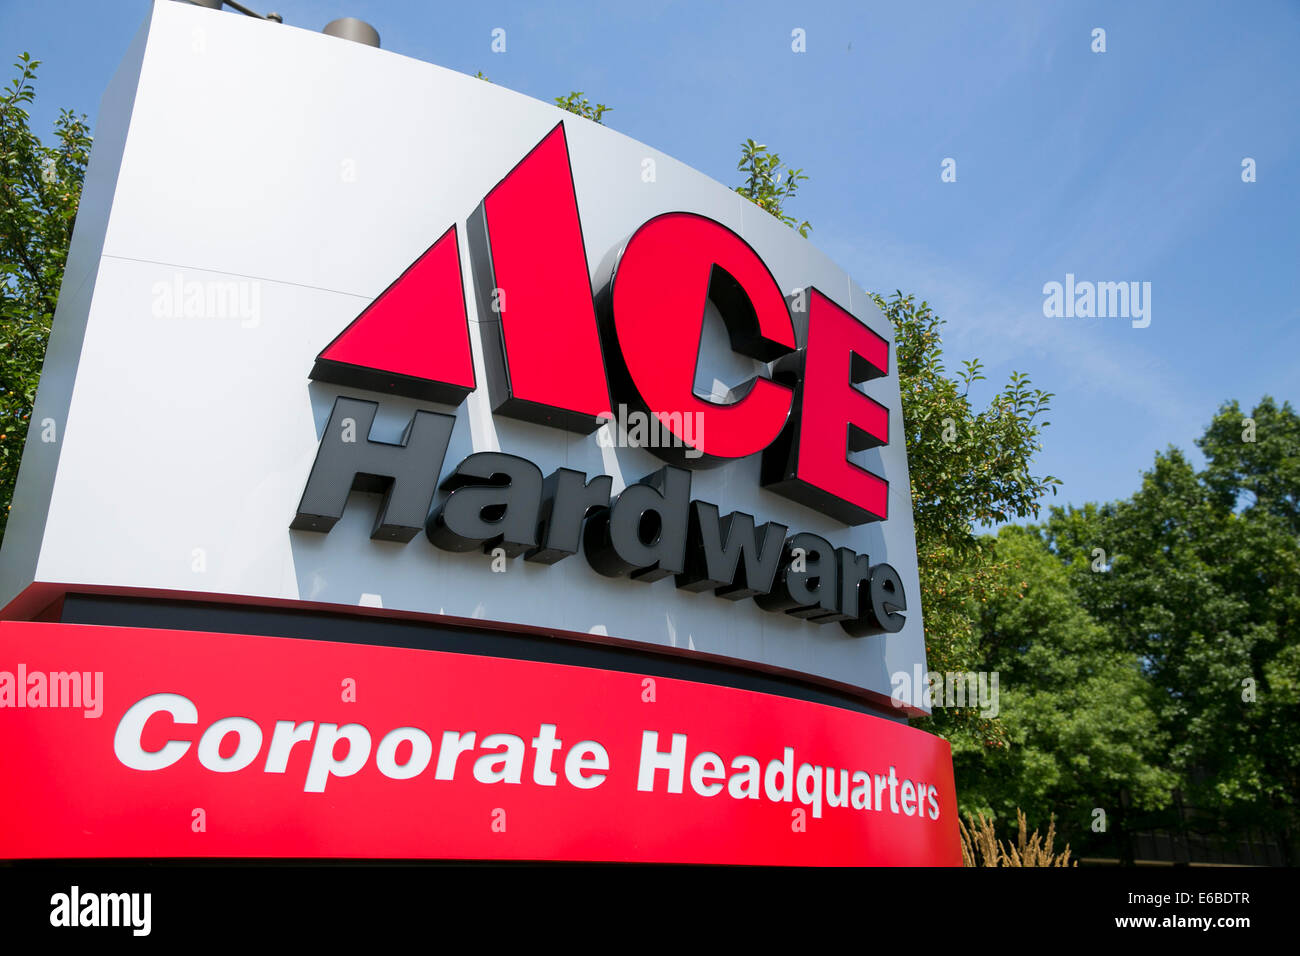 The headquarters of Ace Hardware in Oak Brook, Illinois. - Stock Image